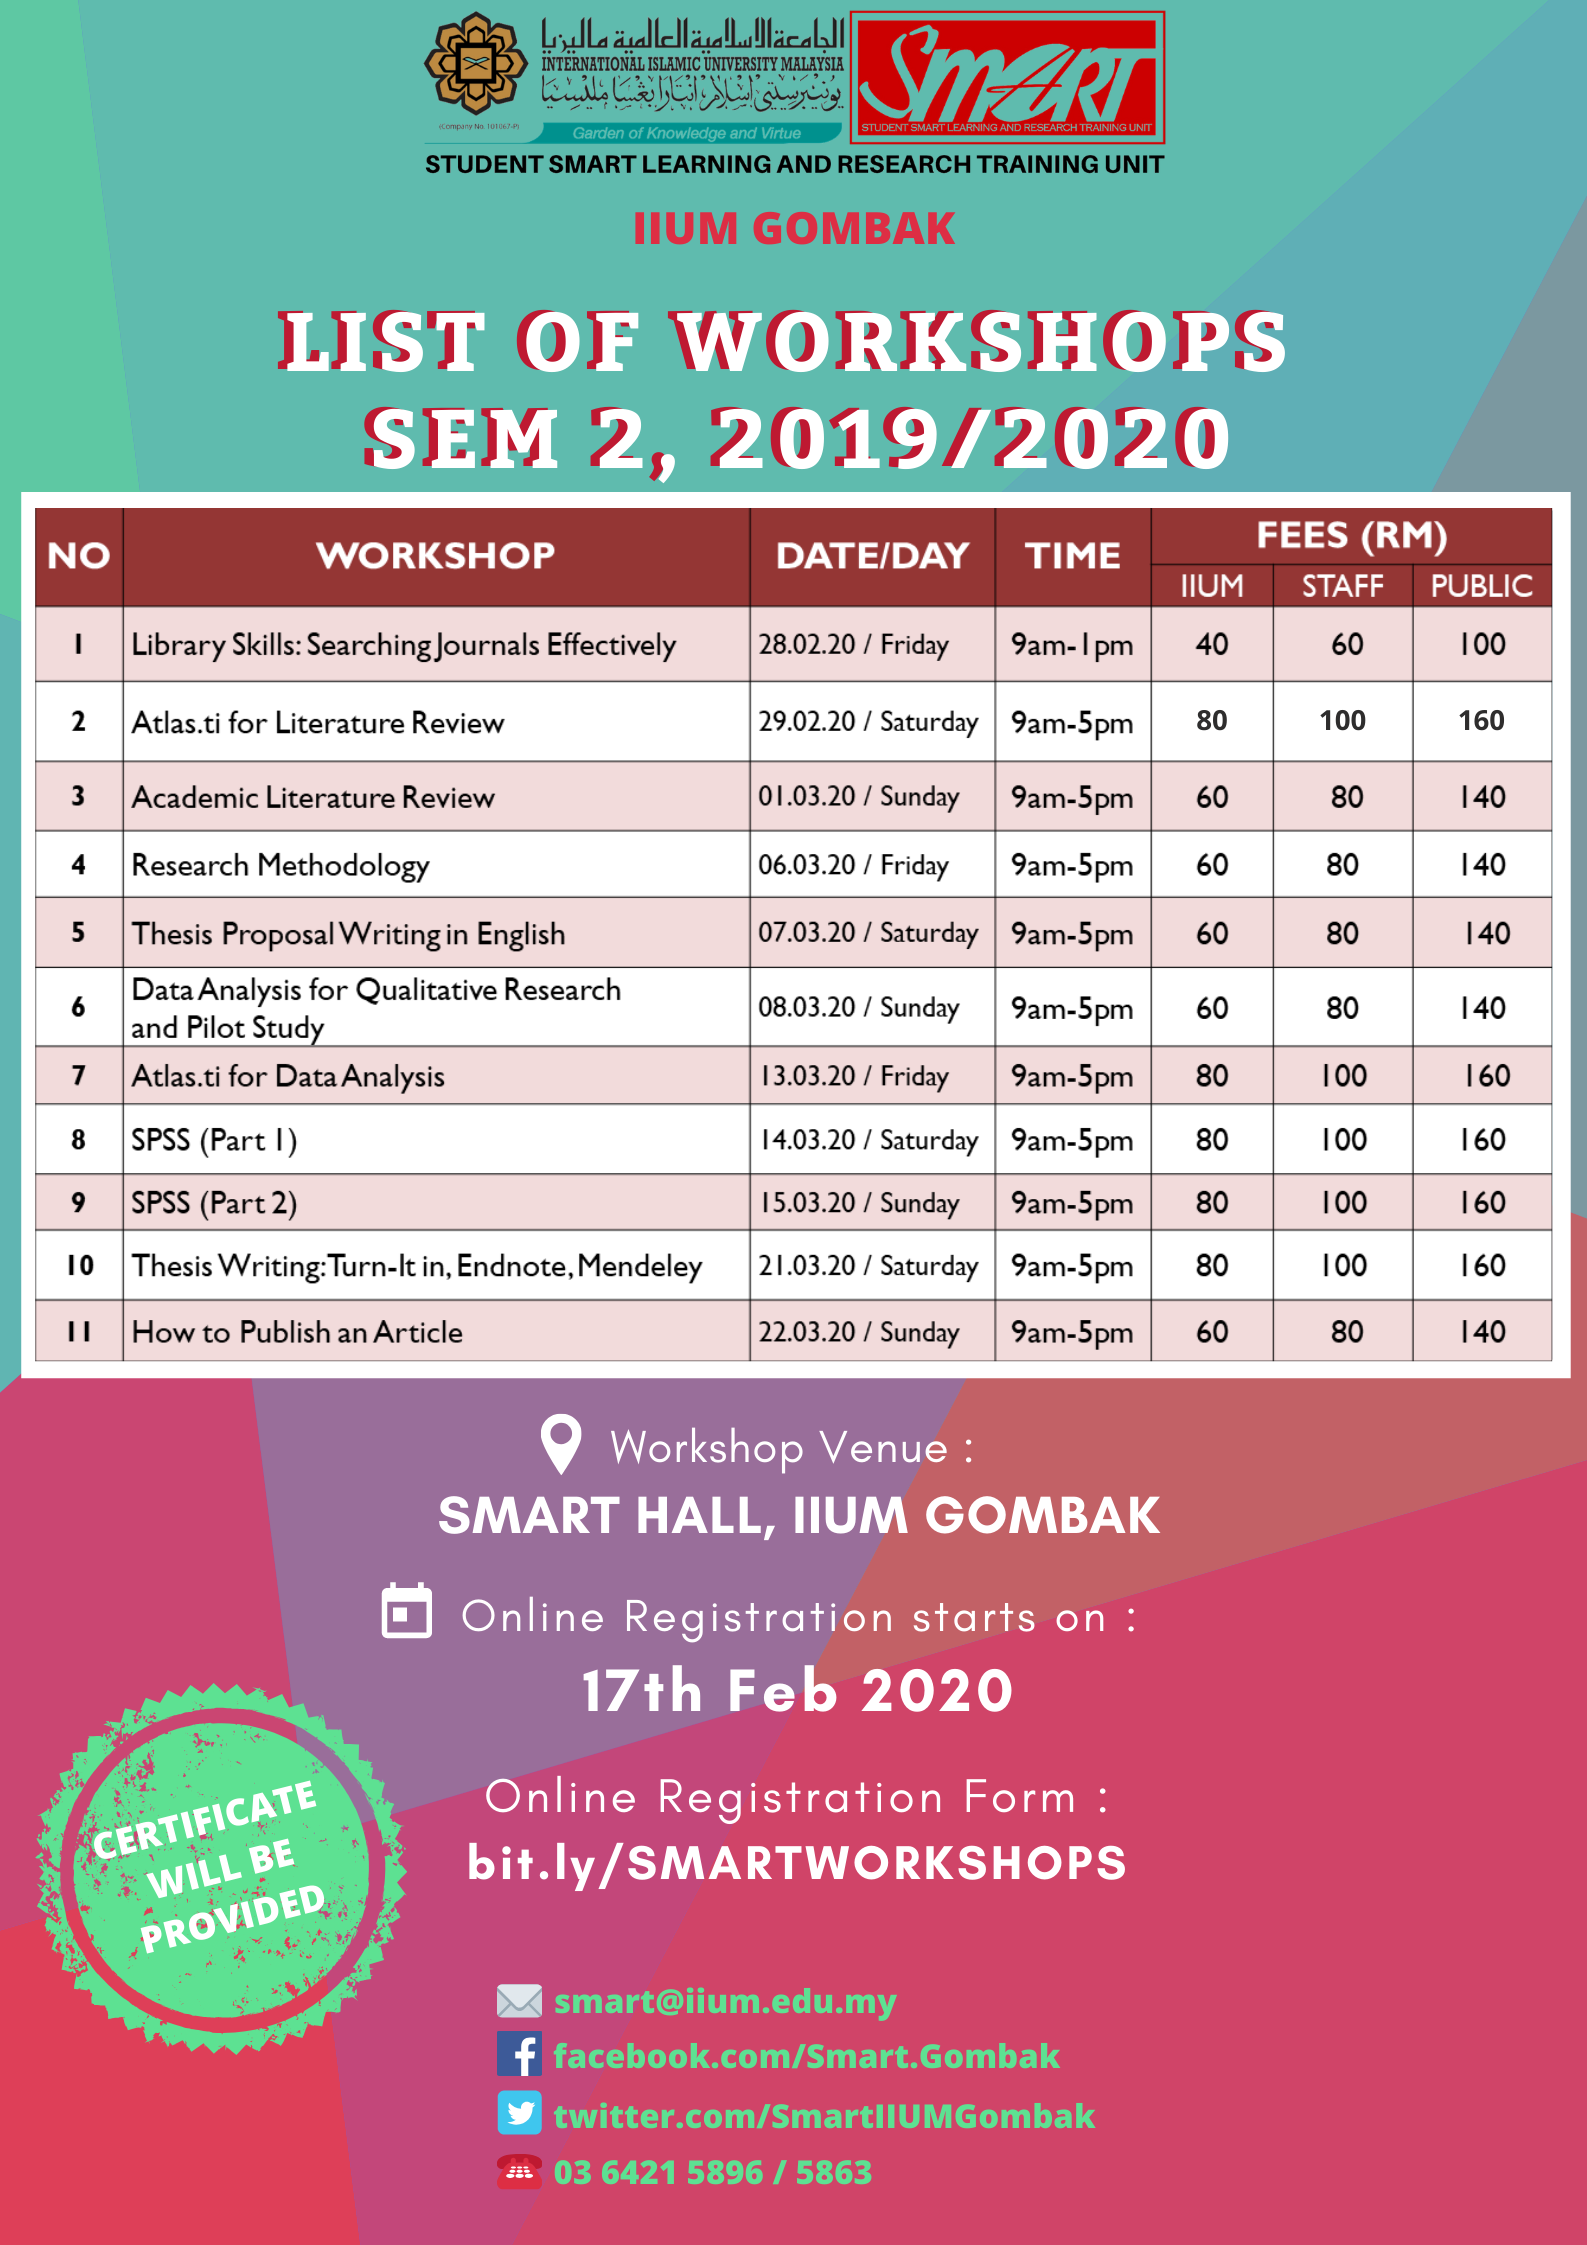 LIST OF WORKSHOP OFFERED AT SMART SEM 2, 2019/2020